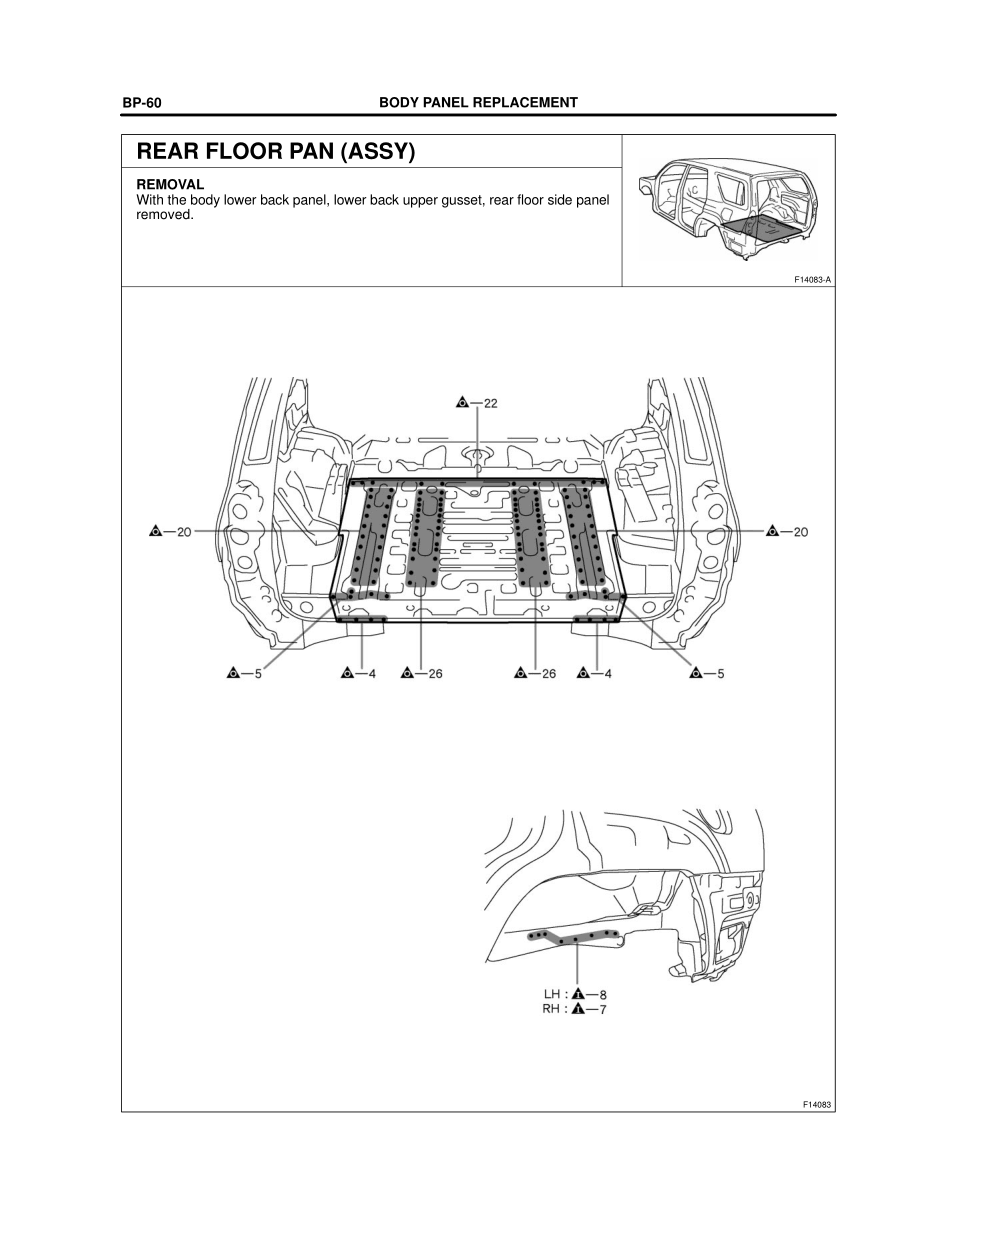 2003-2008 TOYOTA 4Runner Repair Manual, Rear Floor Pan